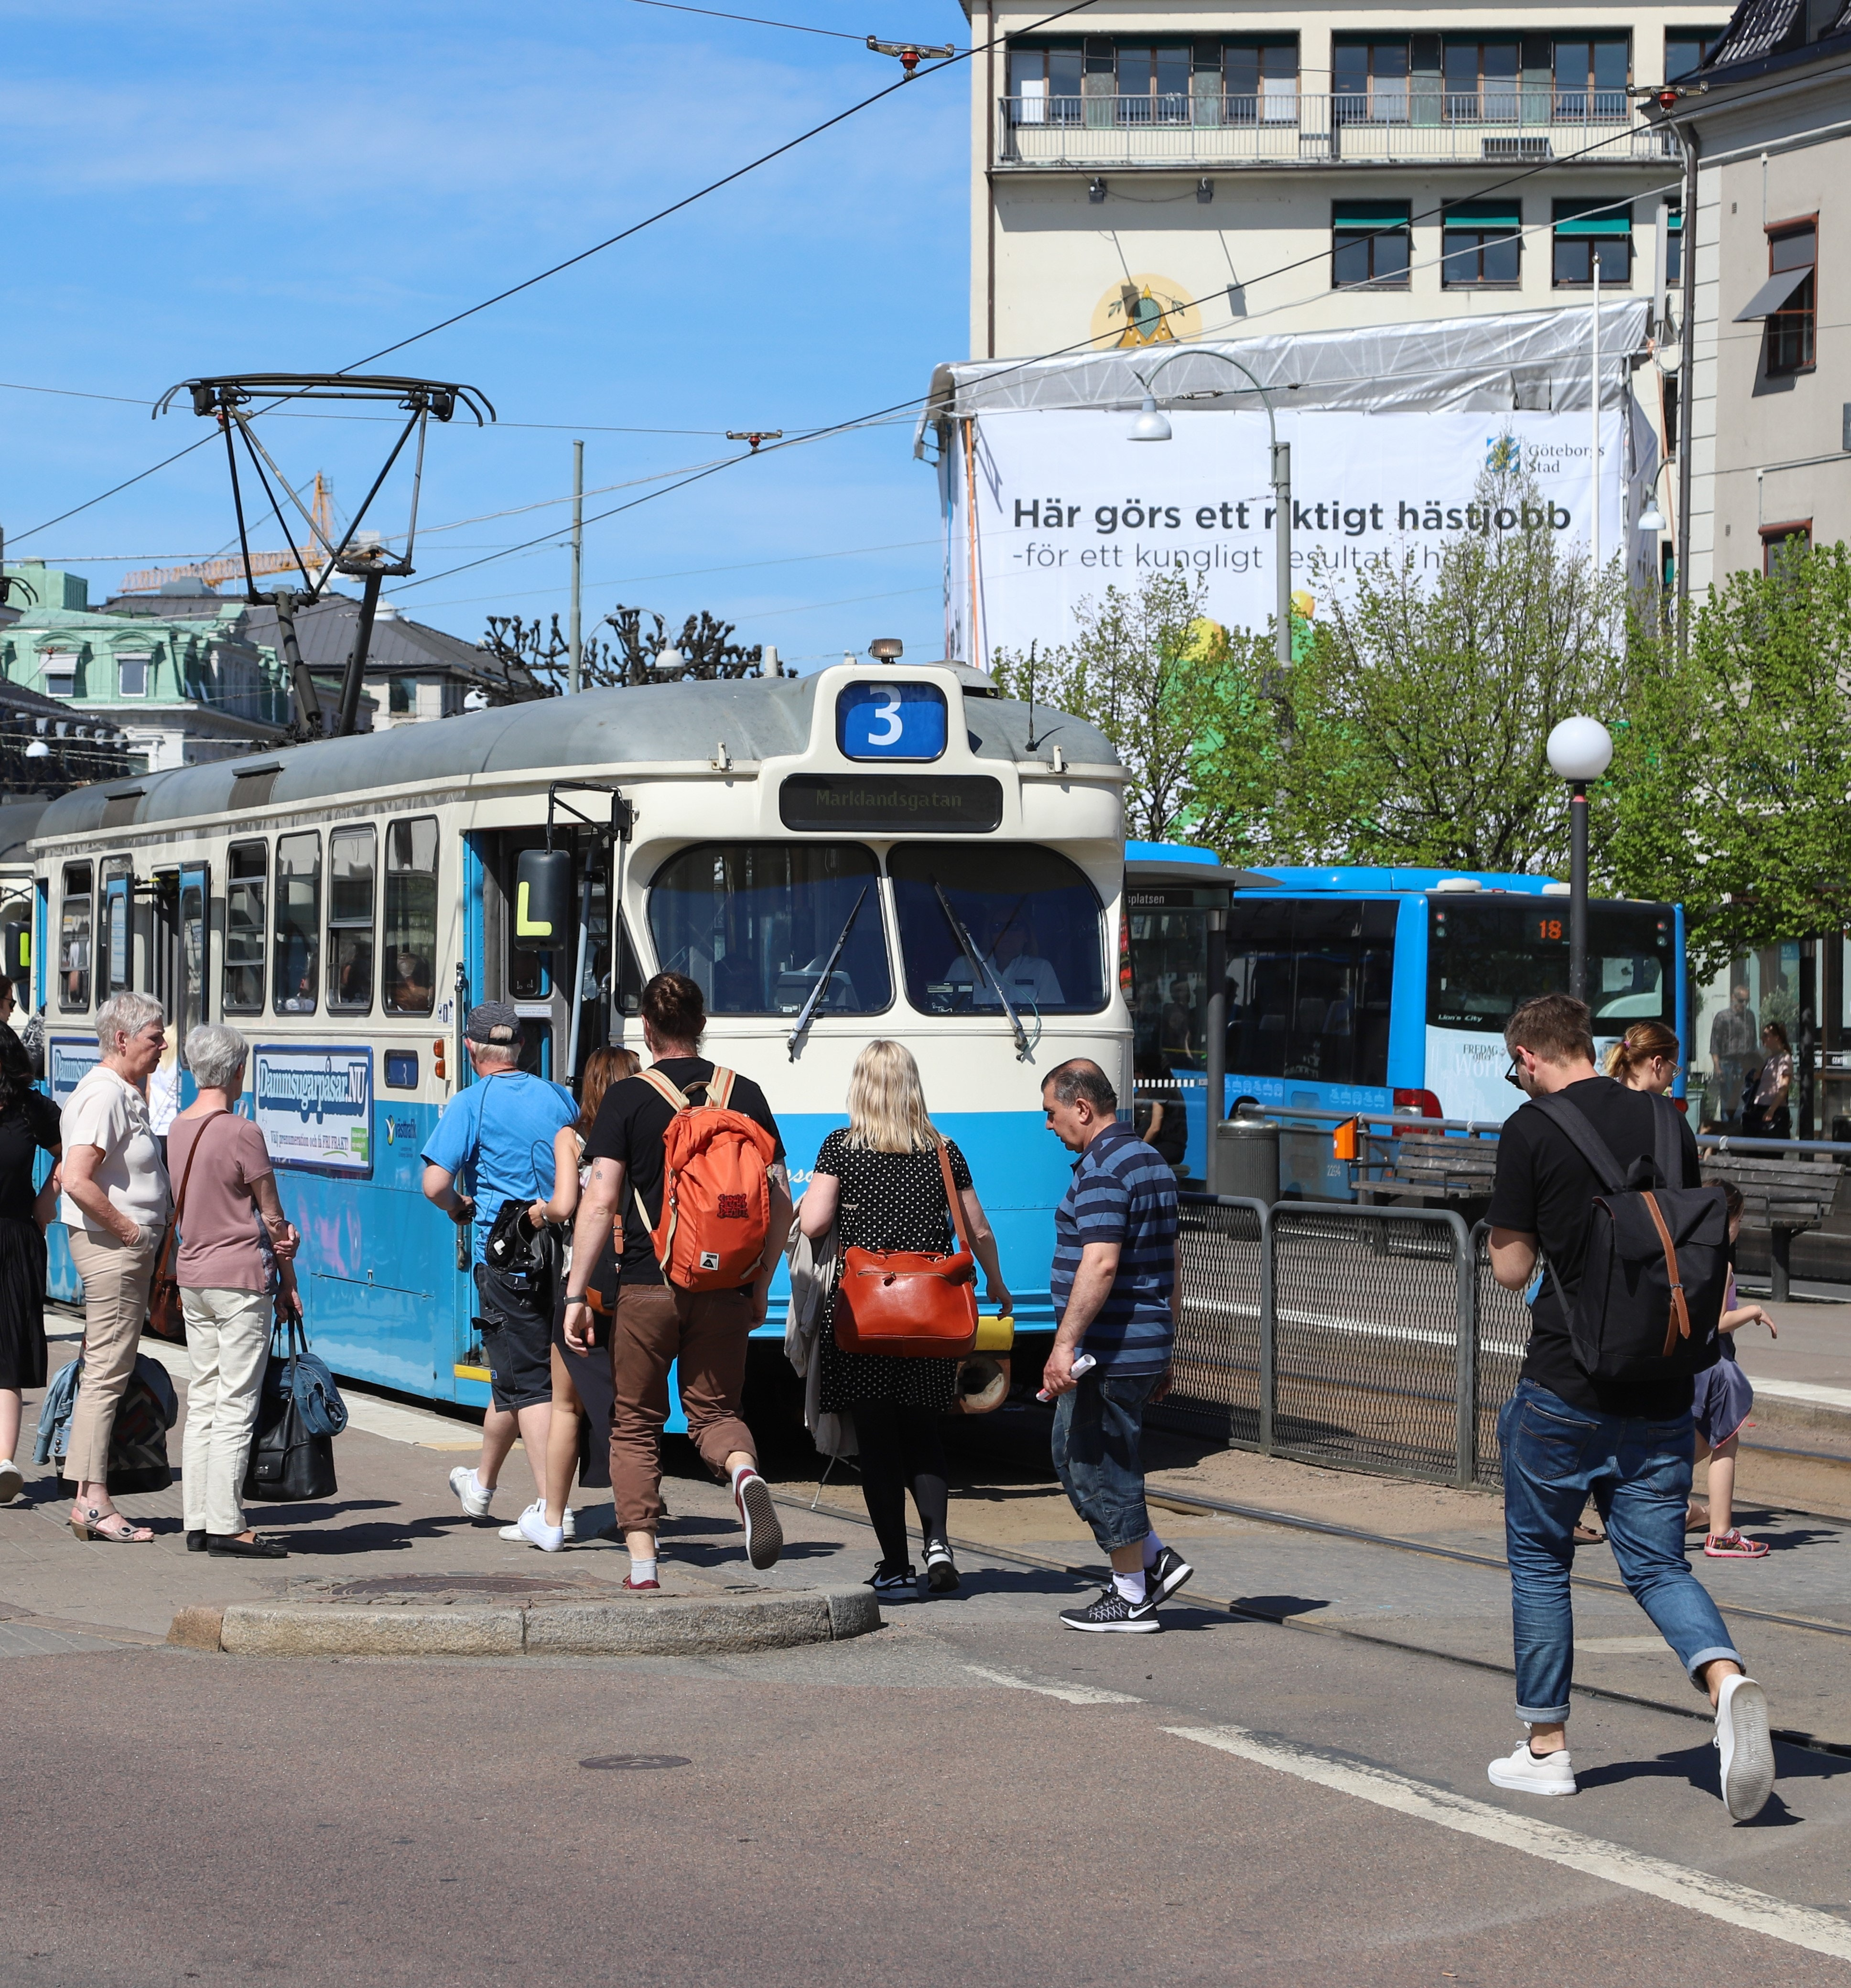 For Mobility as a Service (MaaS) to solve our transport woes, some things need to change